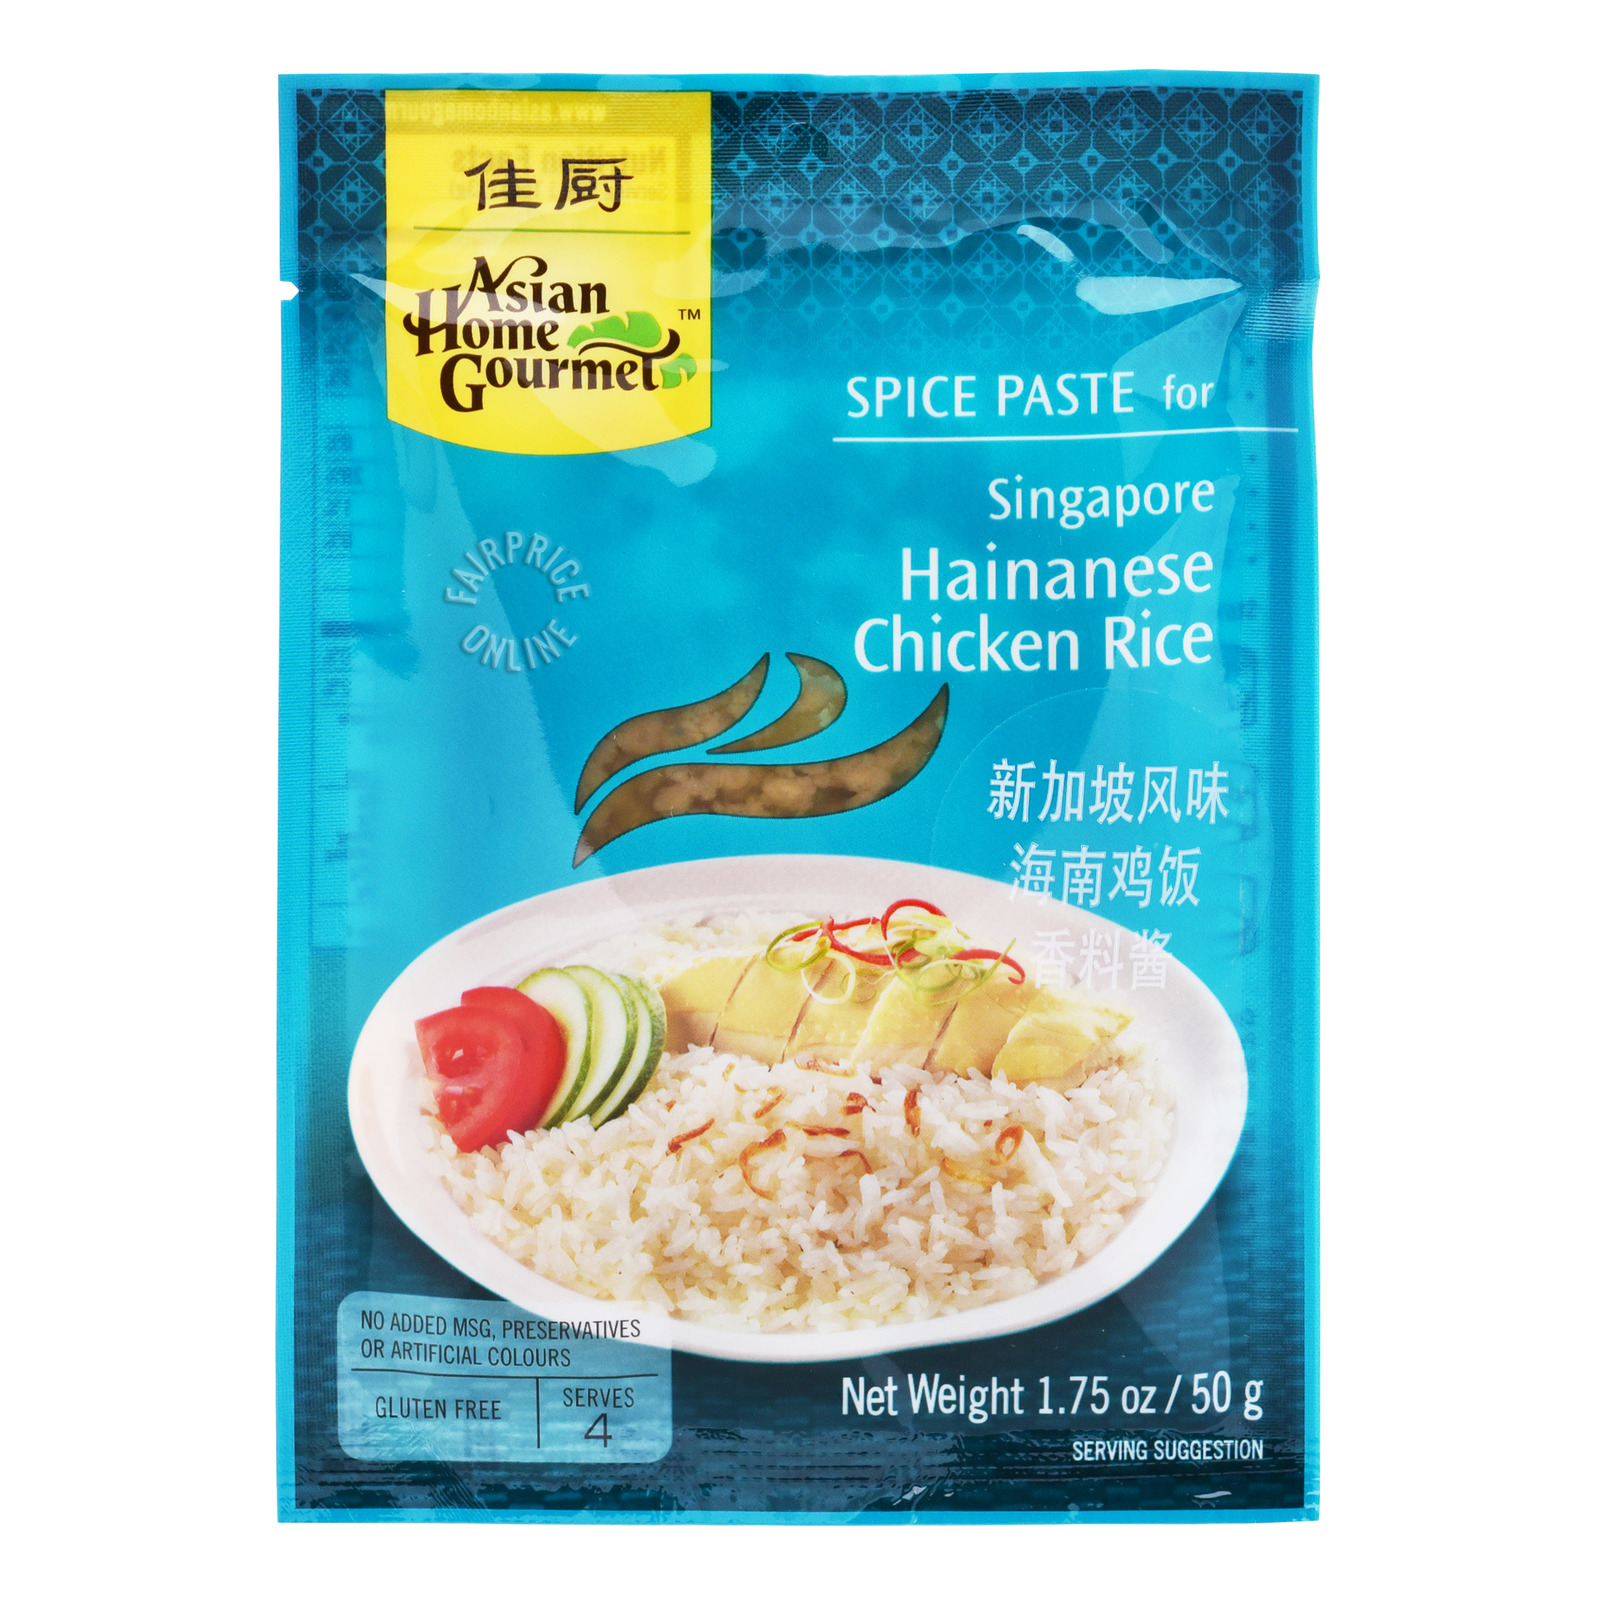 Asian Home Gourmet Spice Paste - Singapore Hainanese Chicken Rice